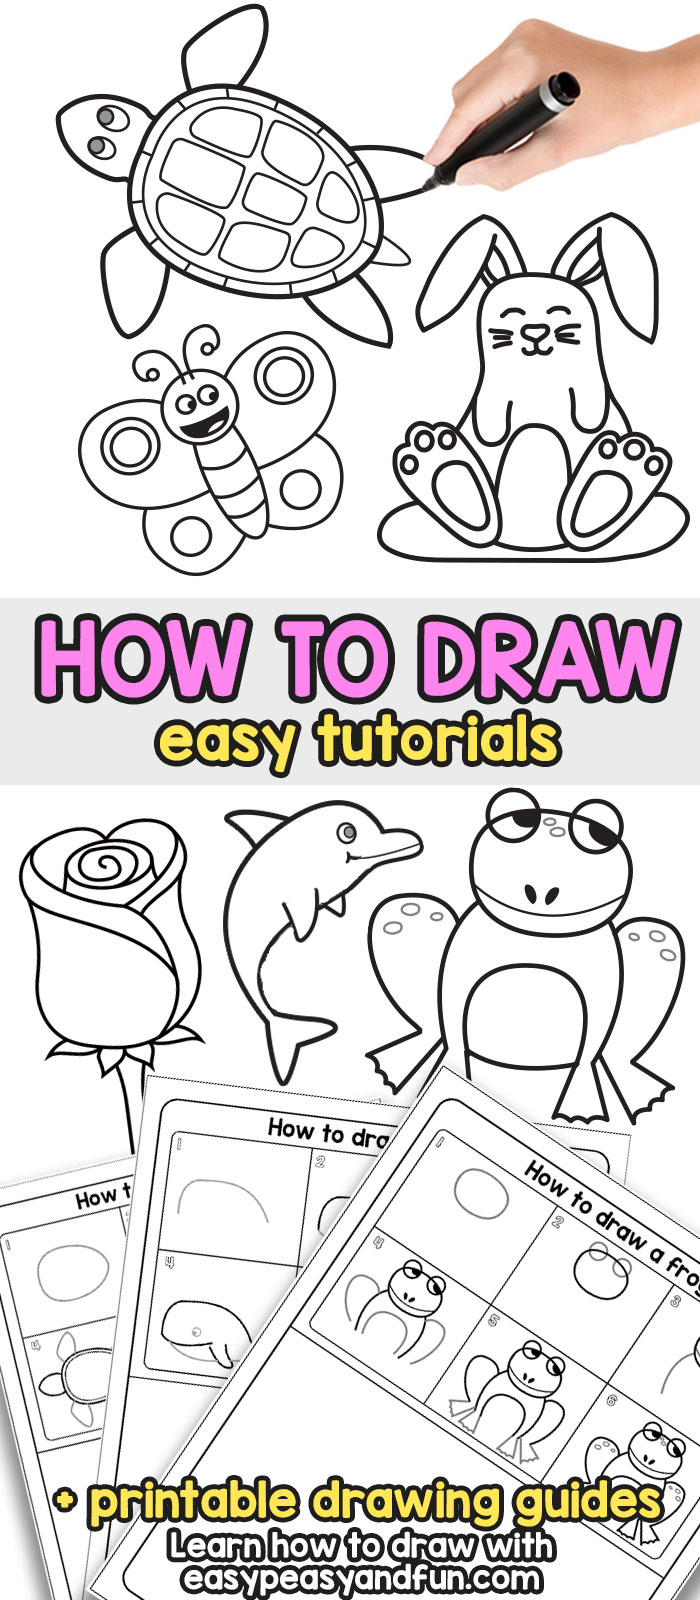 How to Draw.